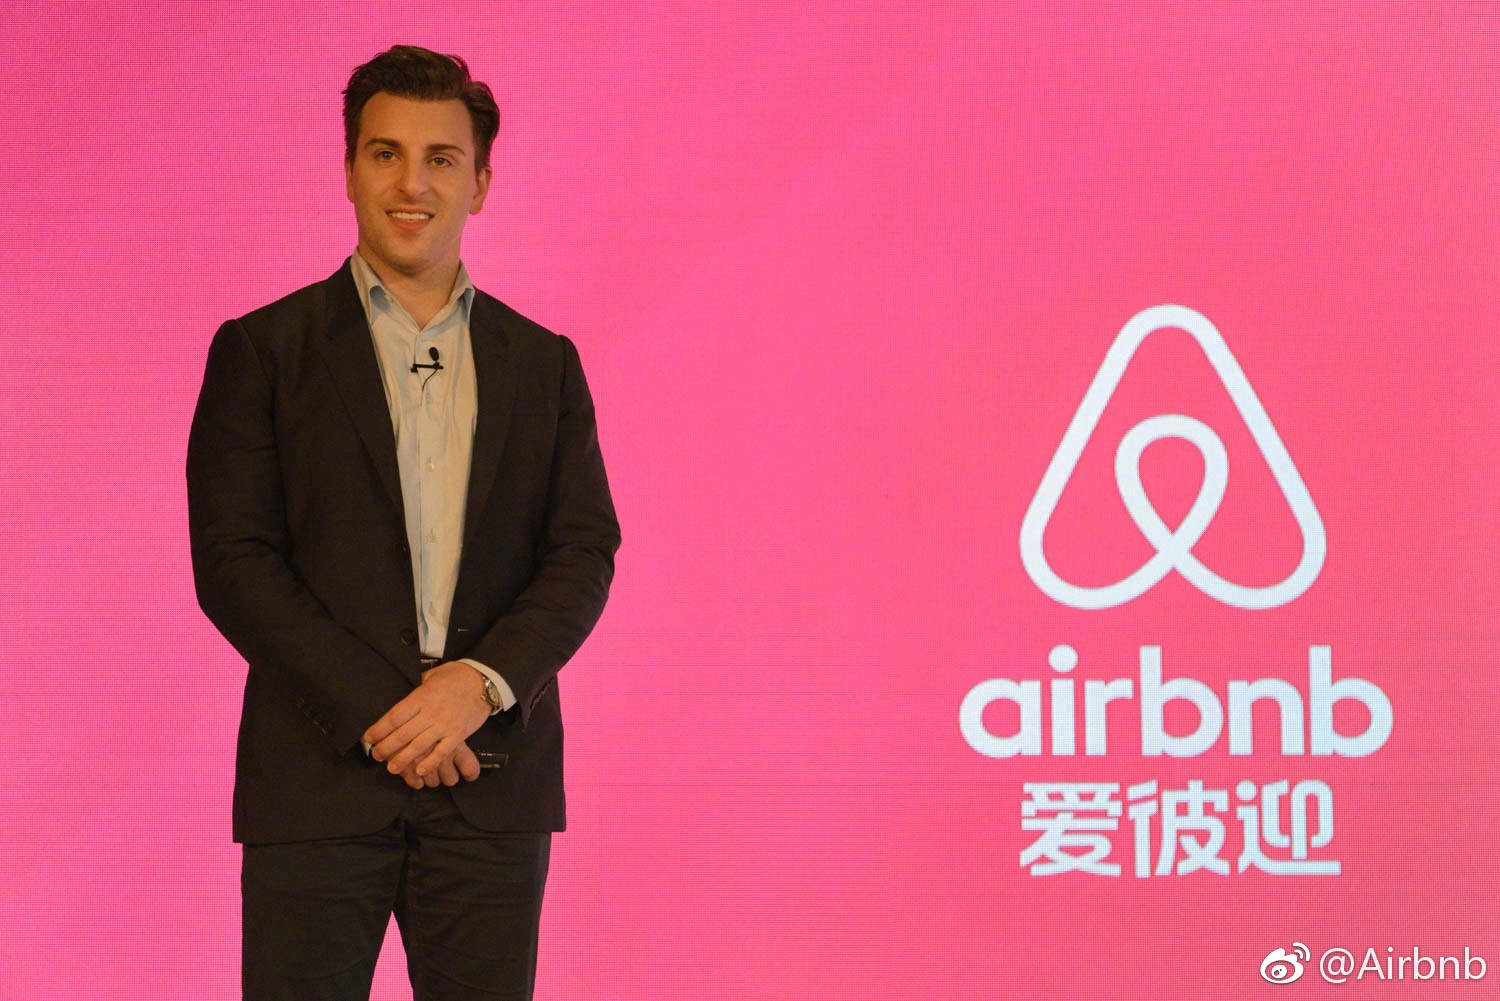 cdn.i.haymarketmedia.asia?n=campaign asia%2fcontent%2f20170323043640 e1c76b6cgy1fdvjft2jw1j215o0rtdn2 - China to Airbnb: New Chinese name is 'ugly-sounding', like 'a filthy love hotel' | Marketing